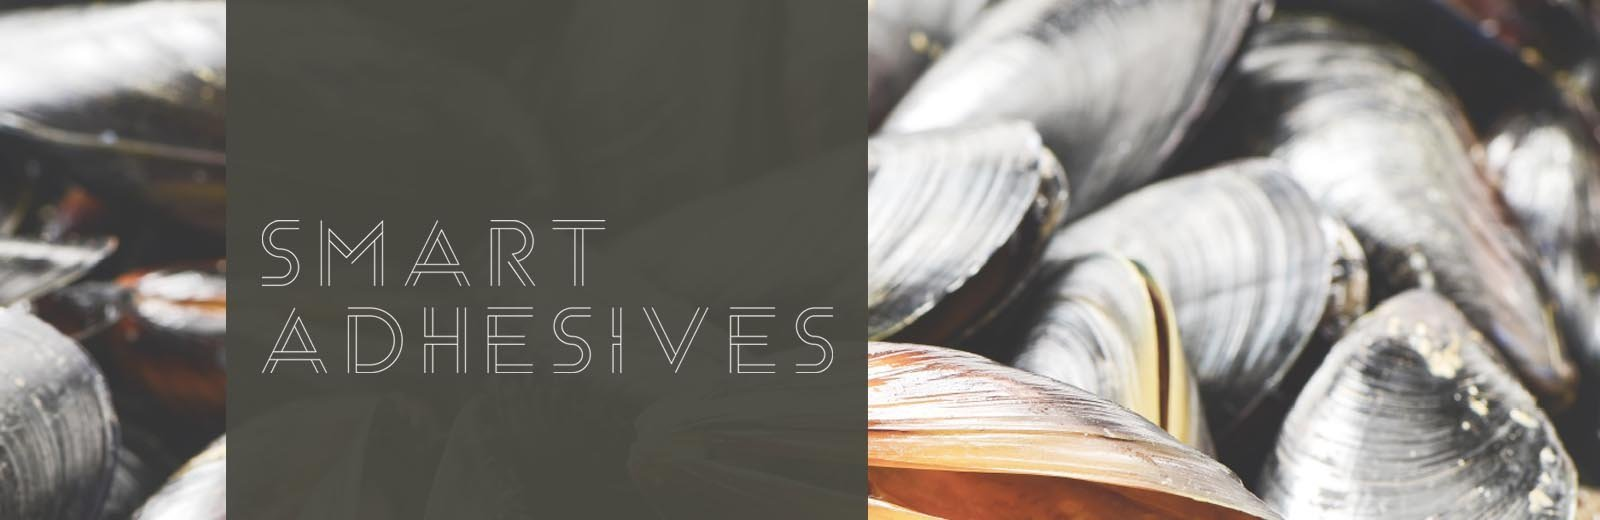 Smart Adhesives text over mussel shells.